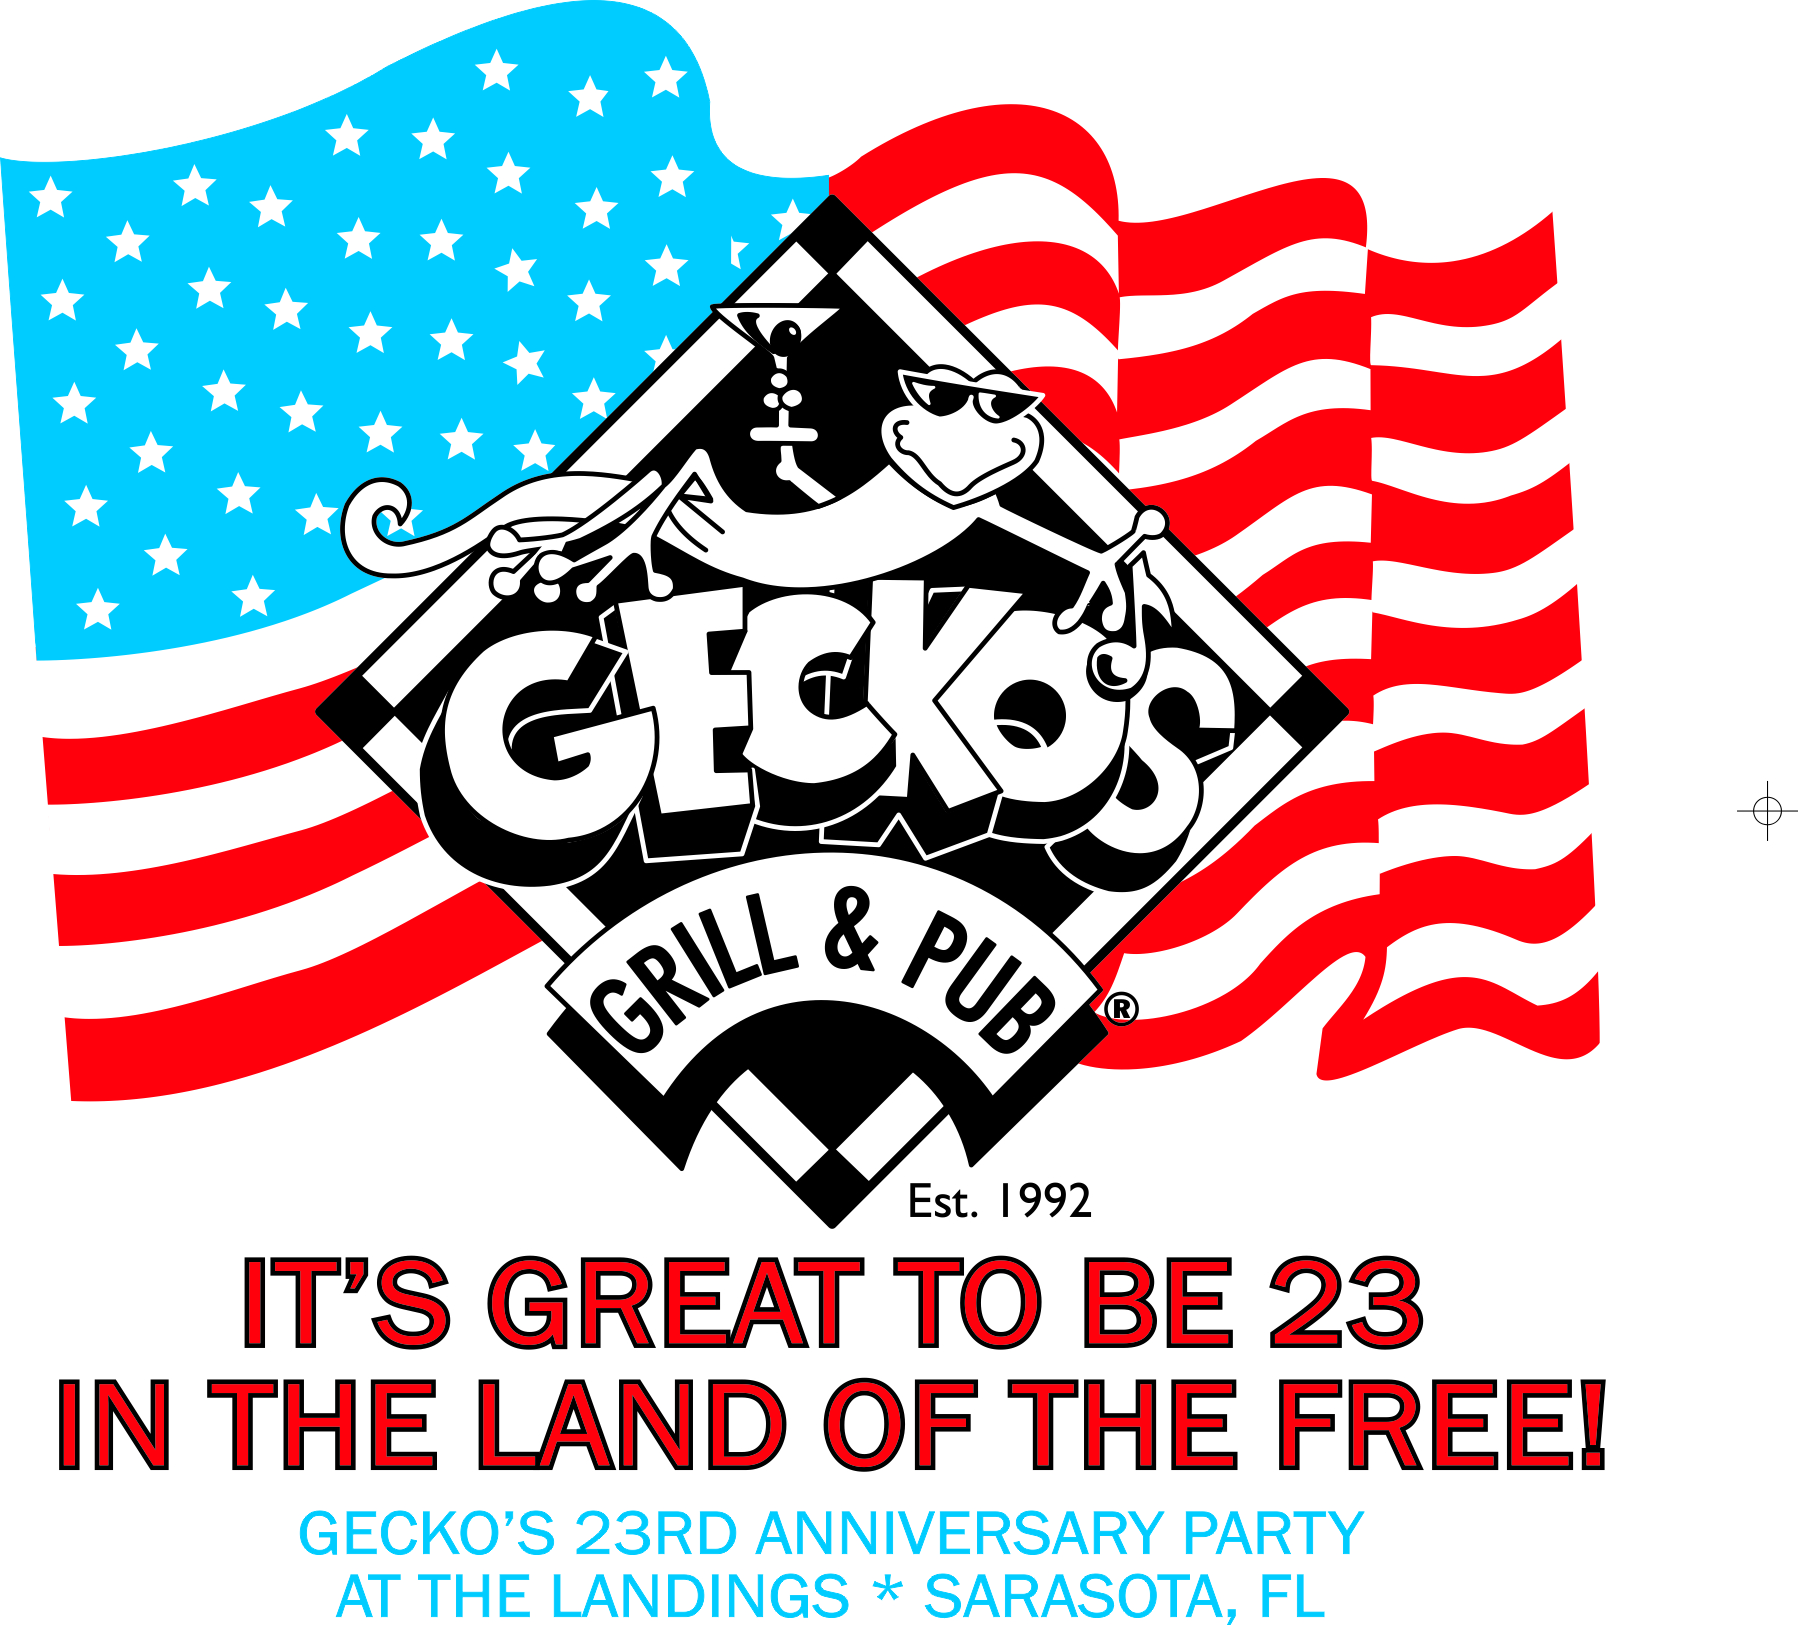 Gecko's 23rd Anniversary BBQ Party at the Landings!